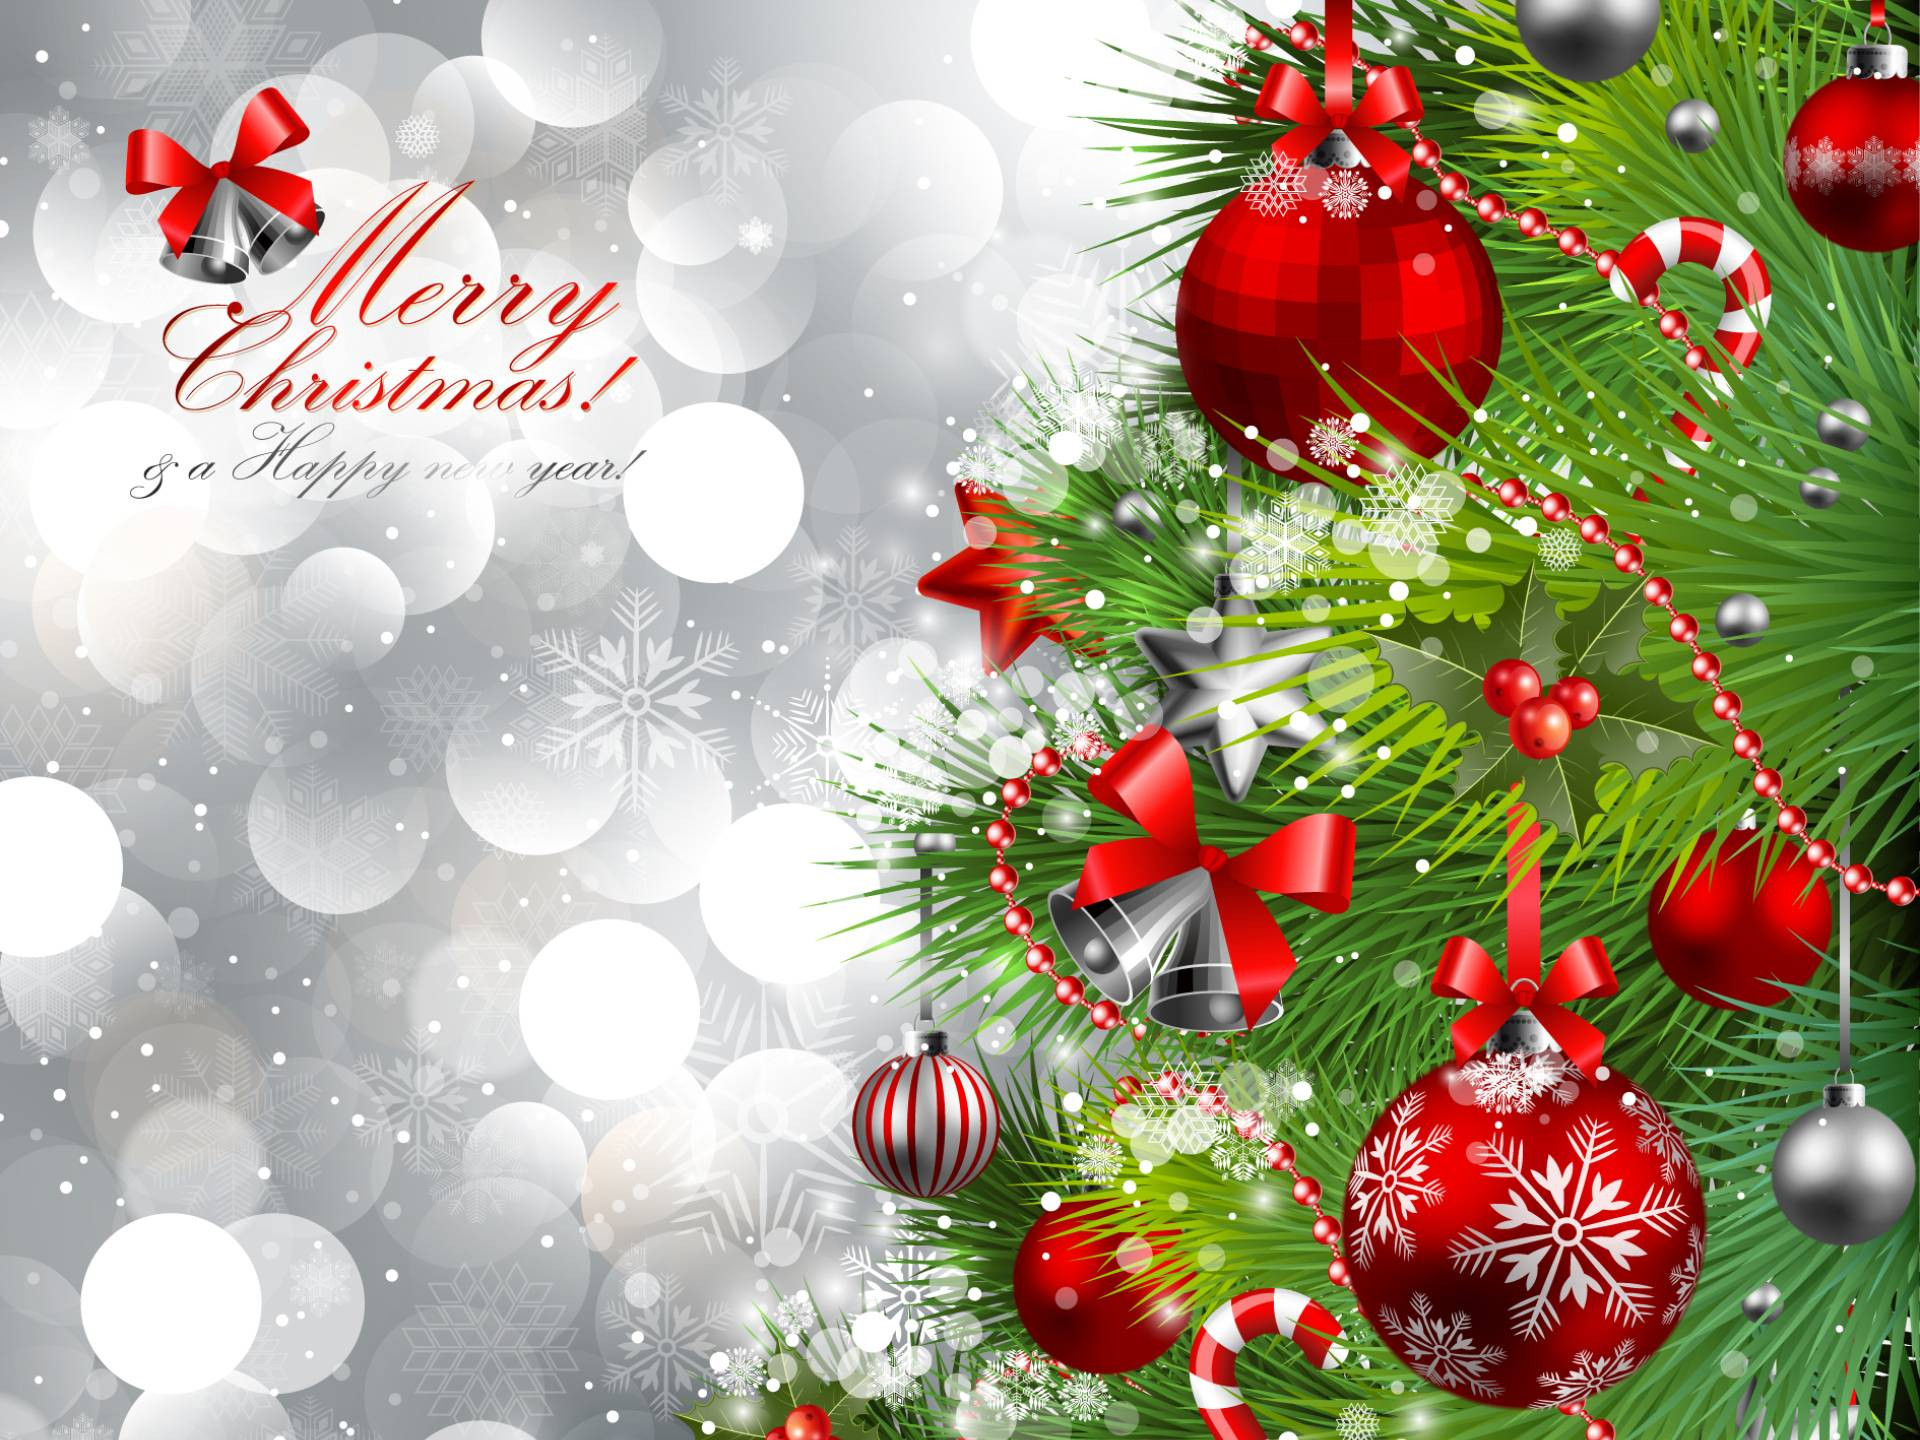 Christmas Day Hd Wallpapers Wallpaper Cave